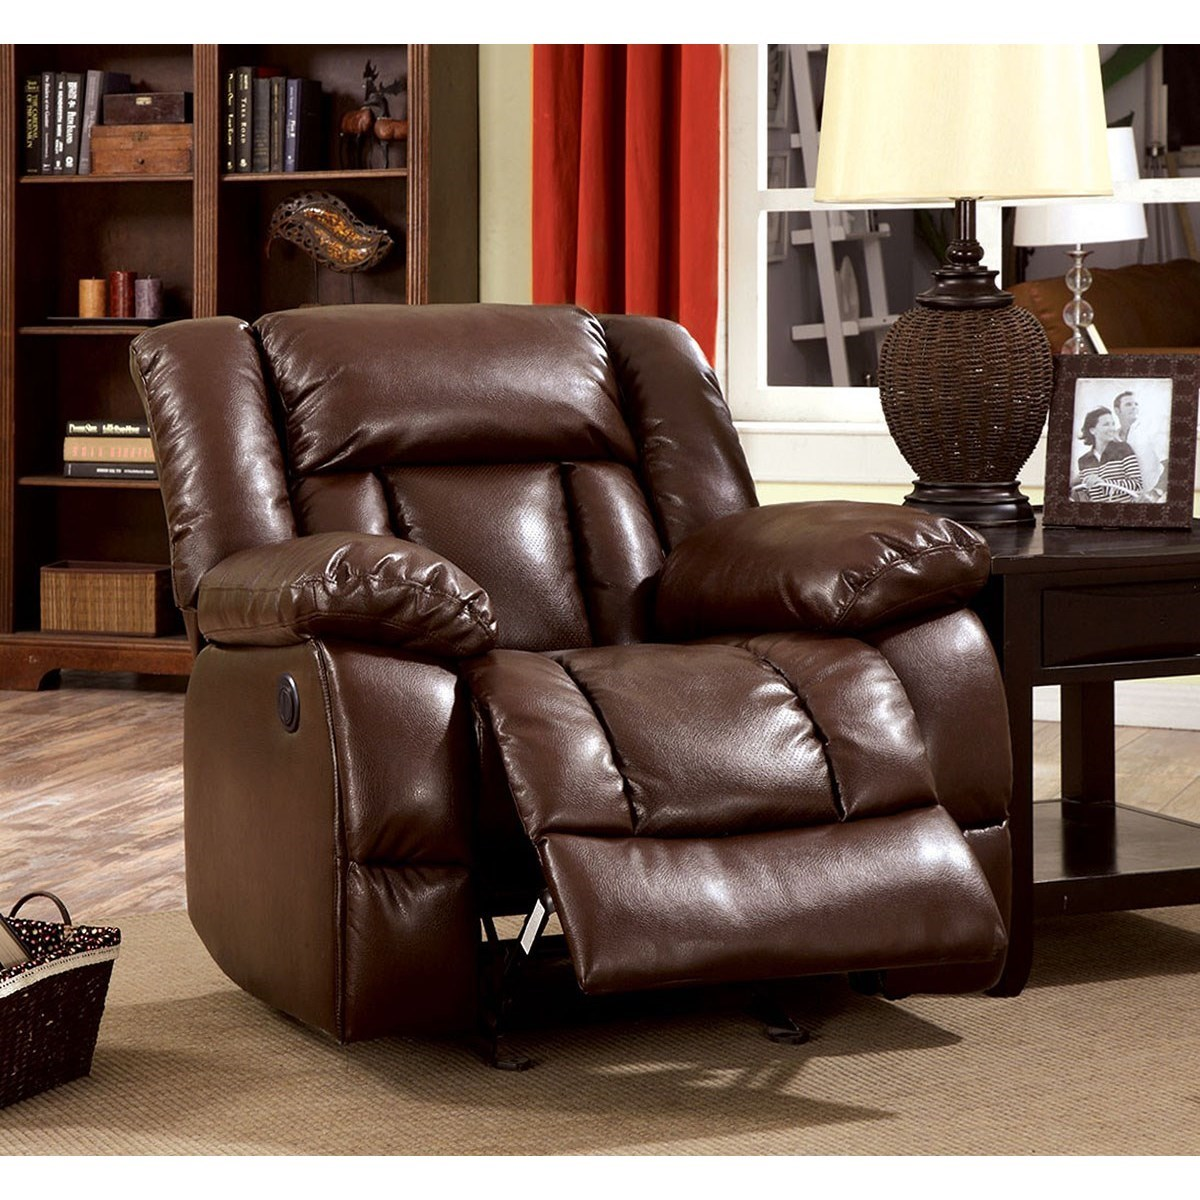 Wimbledon Power-Assist Recliner by Furniture of America at Corner Furniture